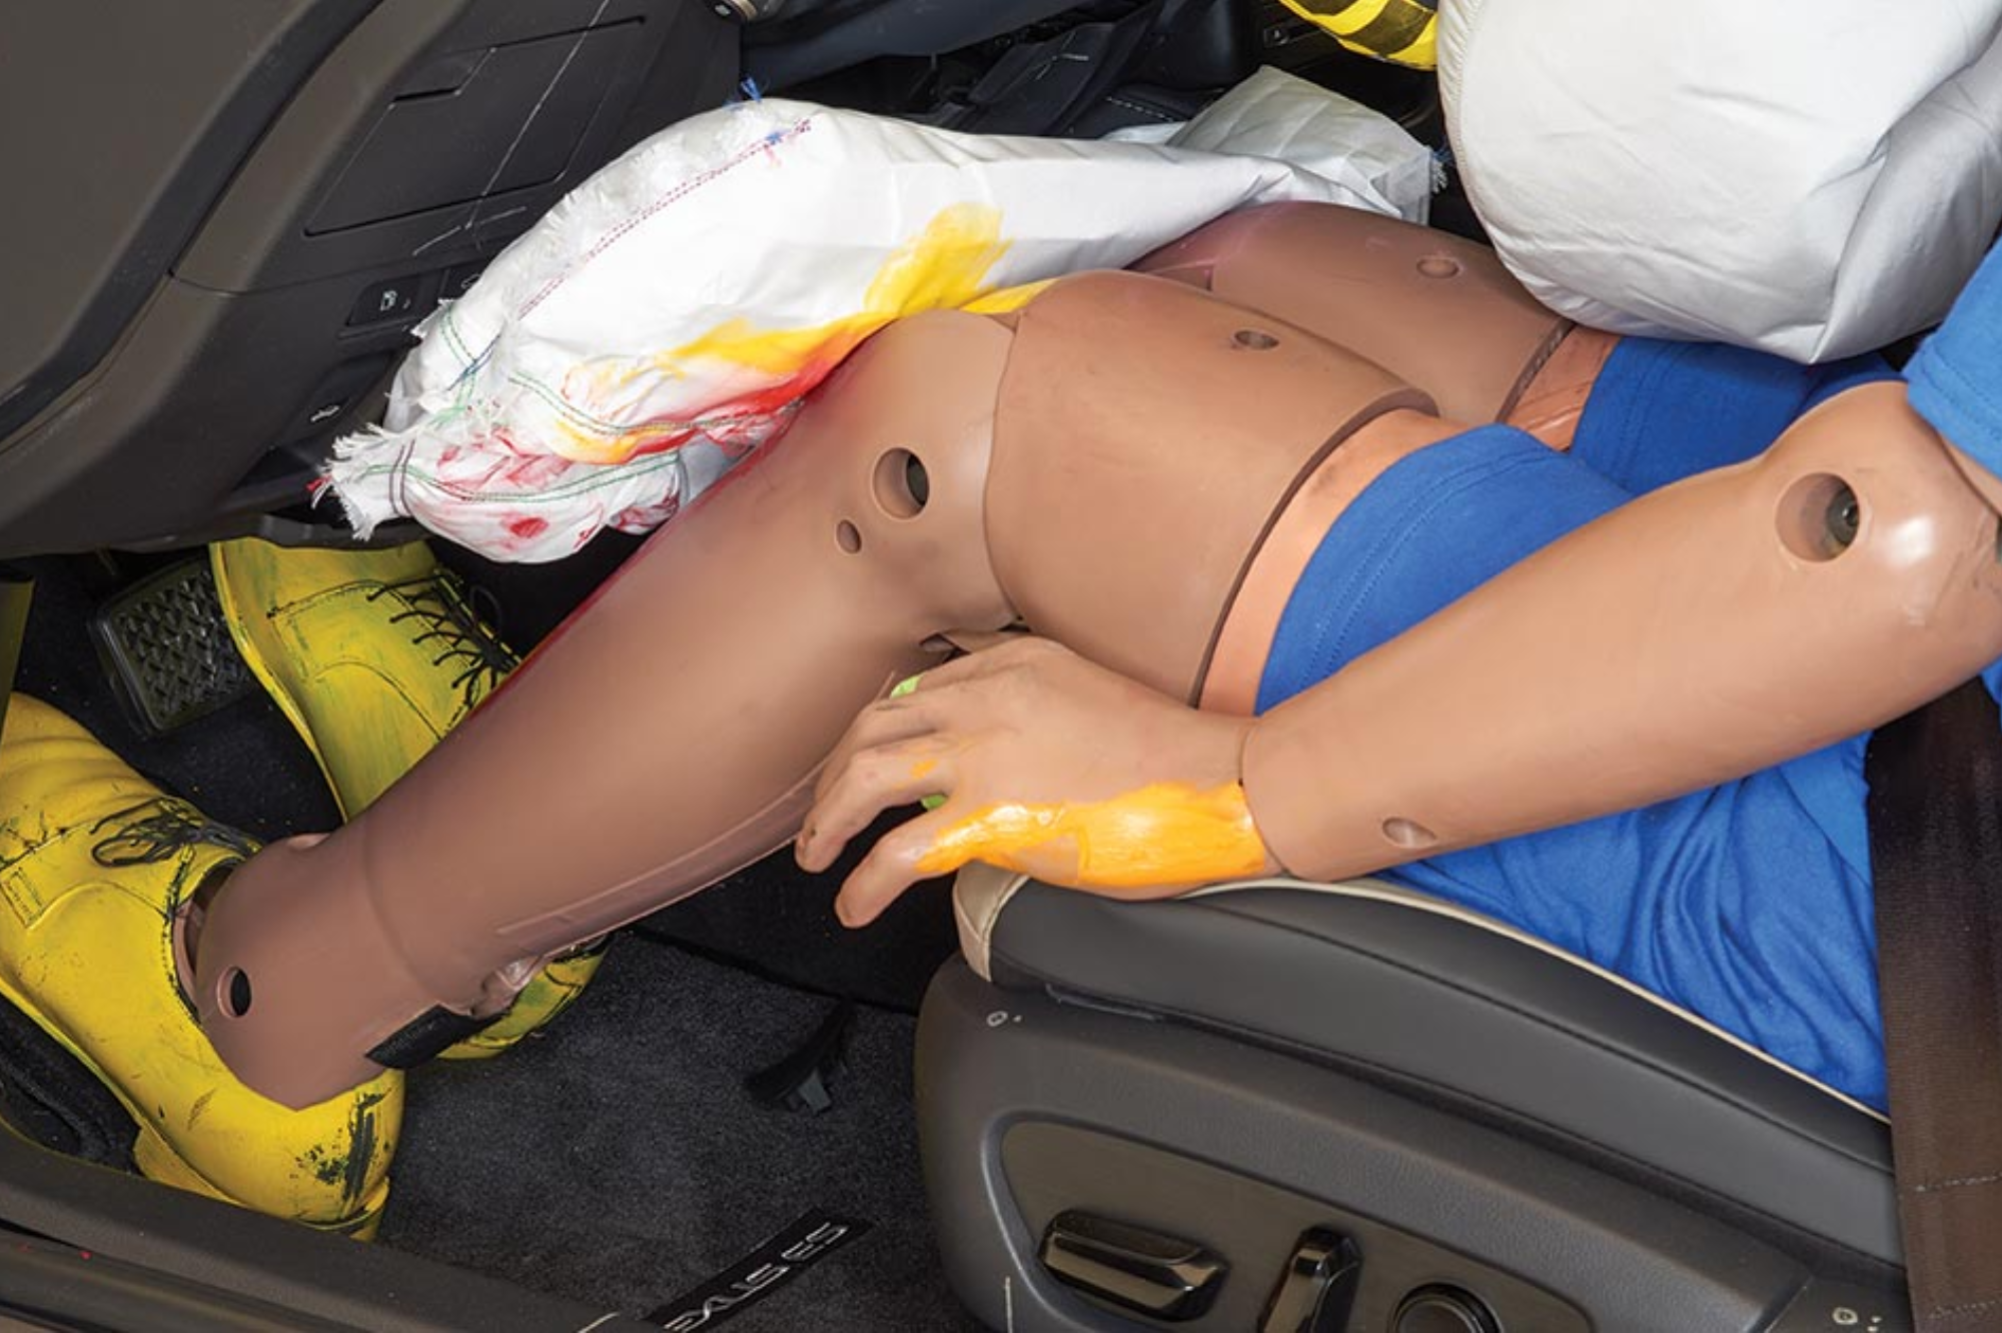 Needless Knee Airbags May Cause More Harm Than Good, Study Says